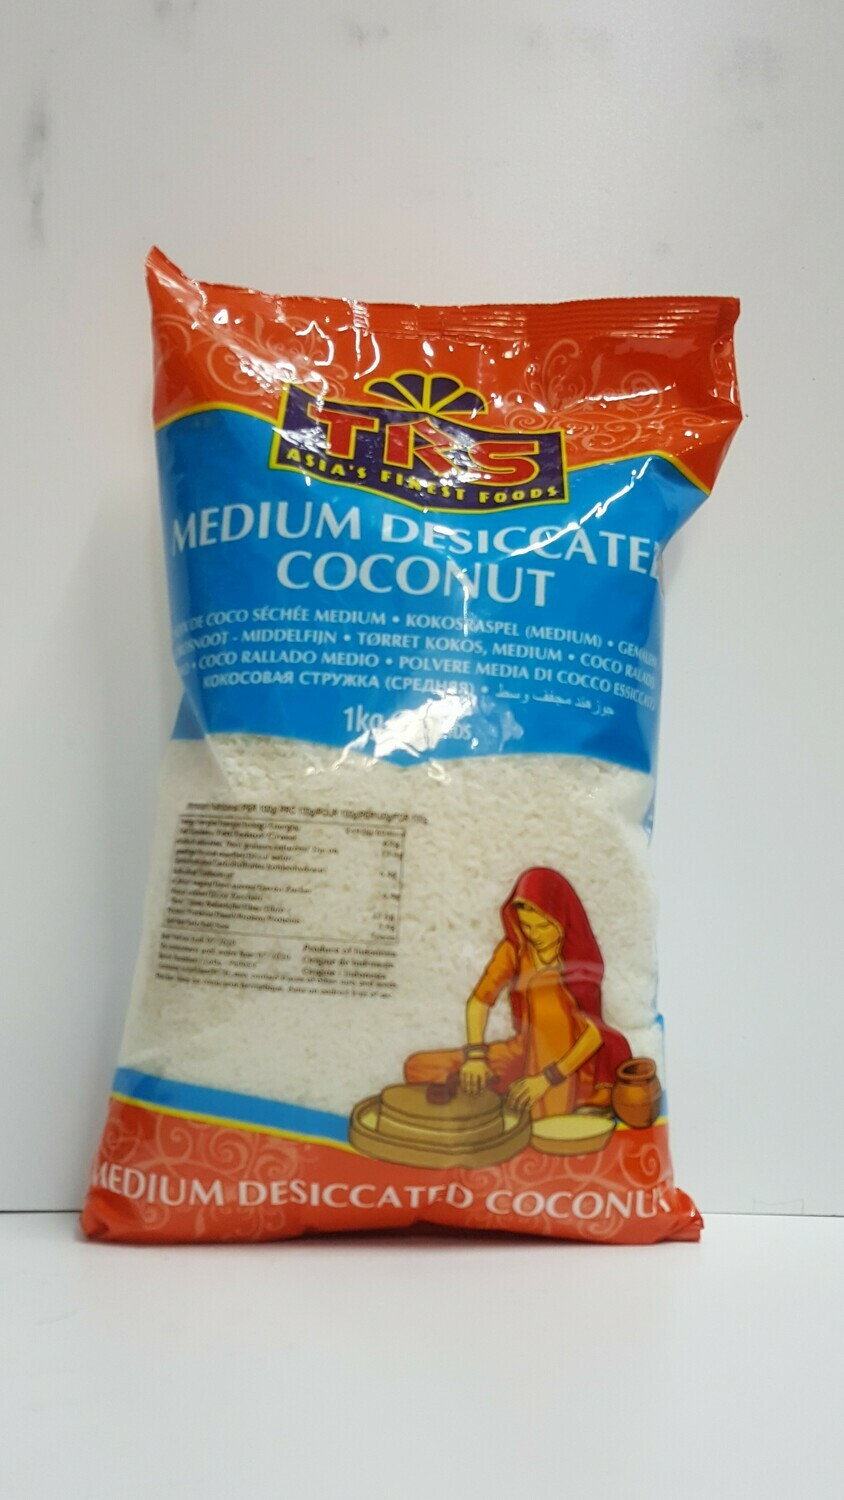 Medium Desiccated Coconut TRS 1Kg